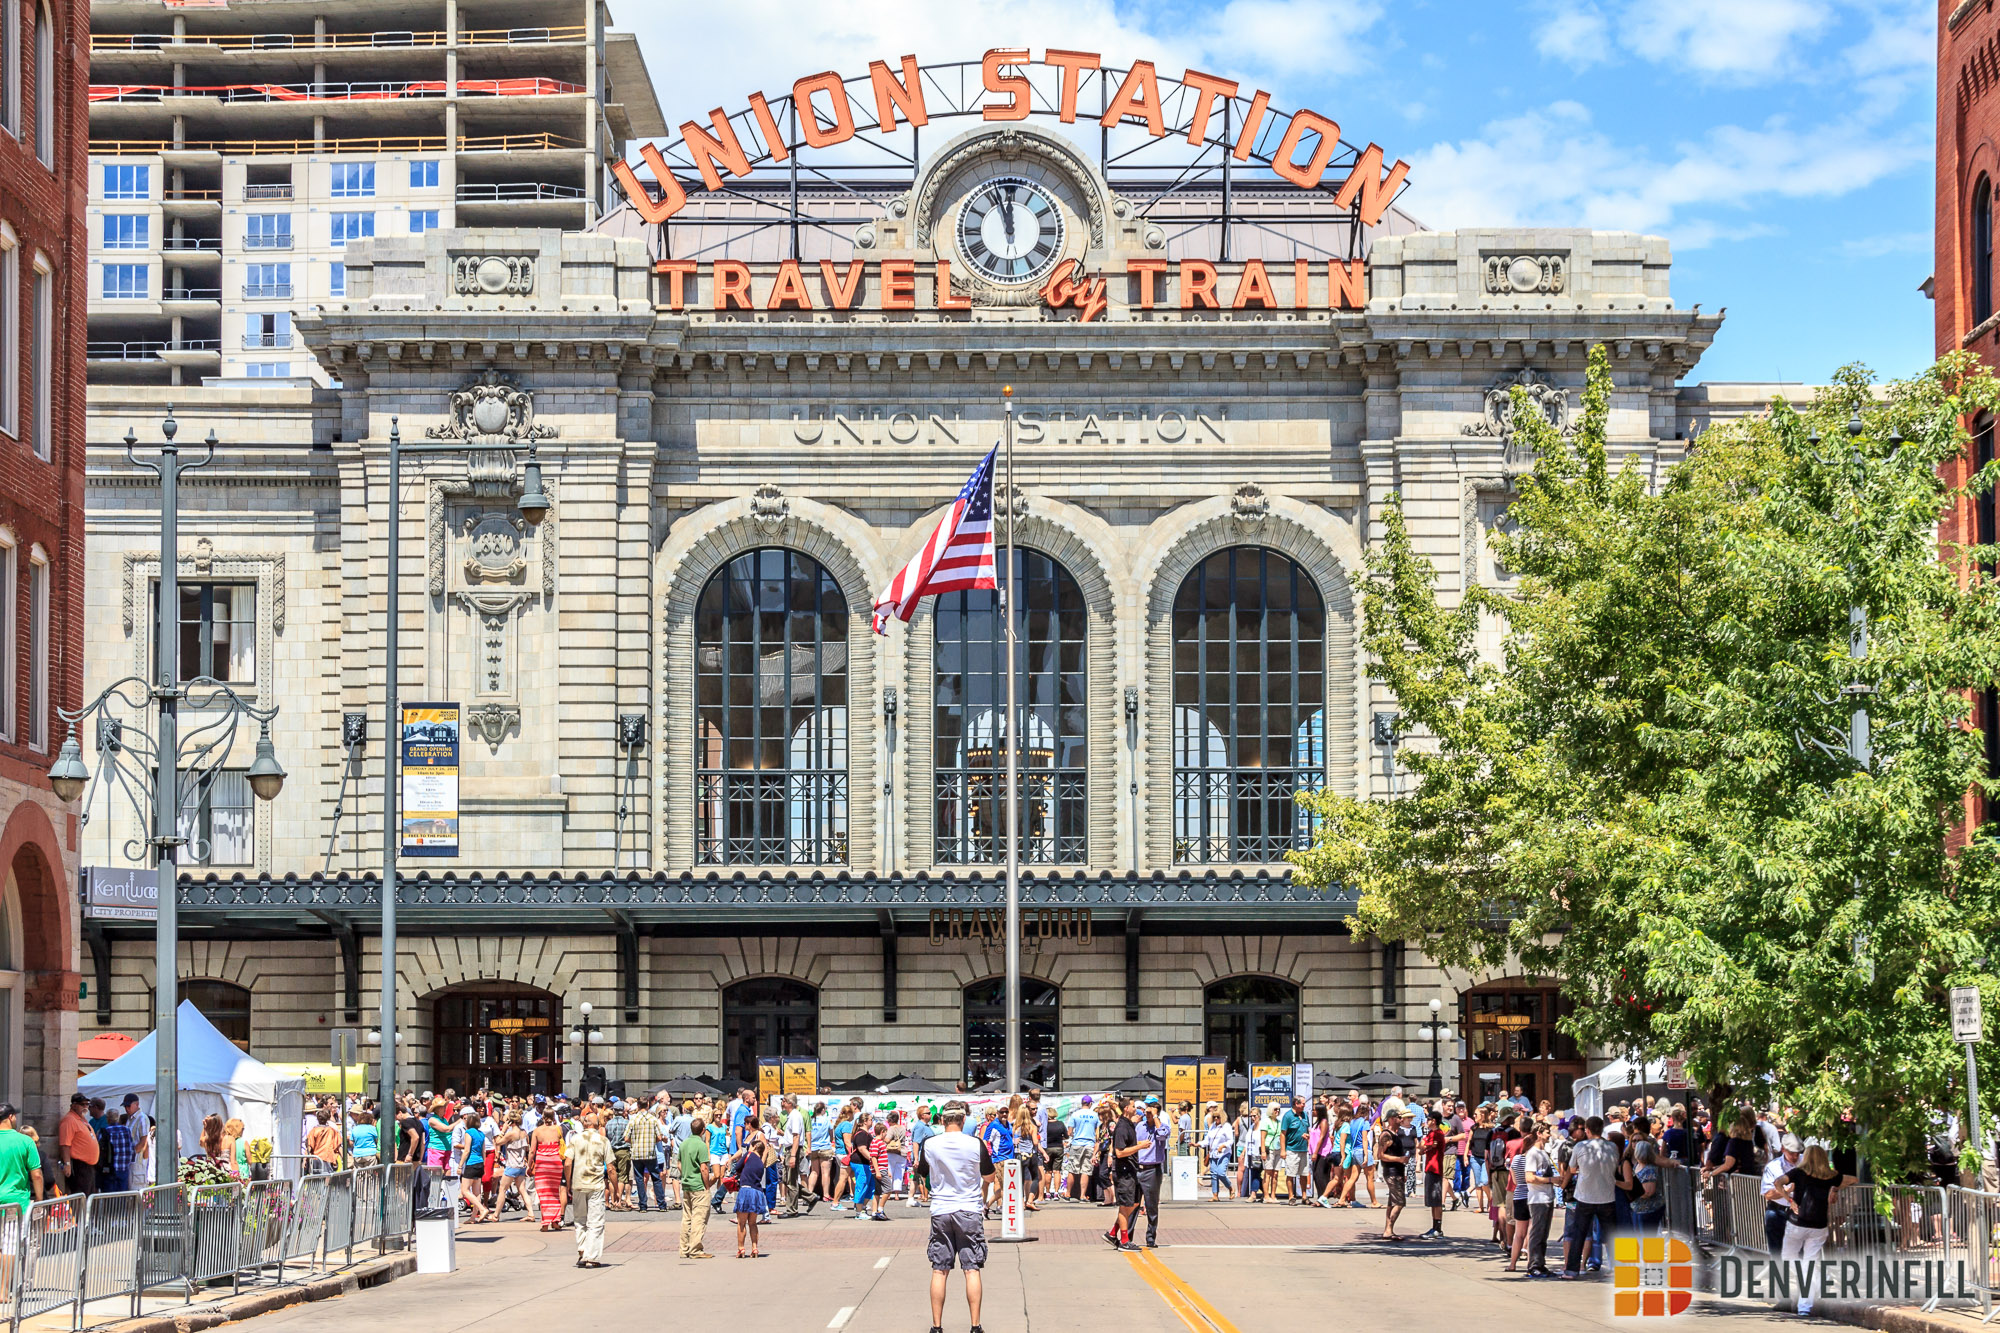 Denver Union Station Final Update, Part 1